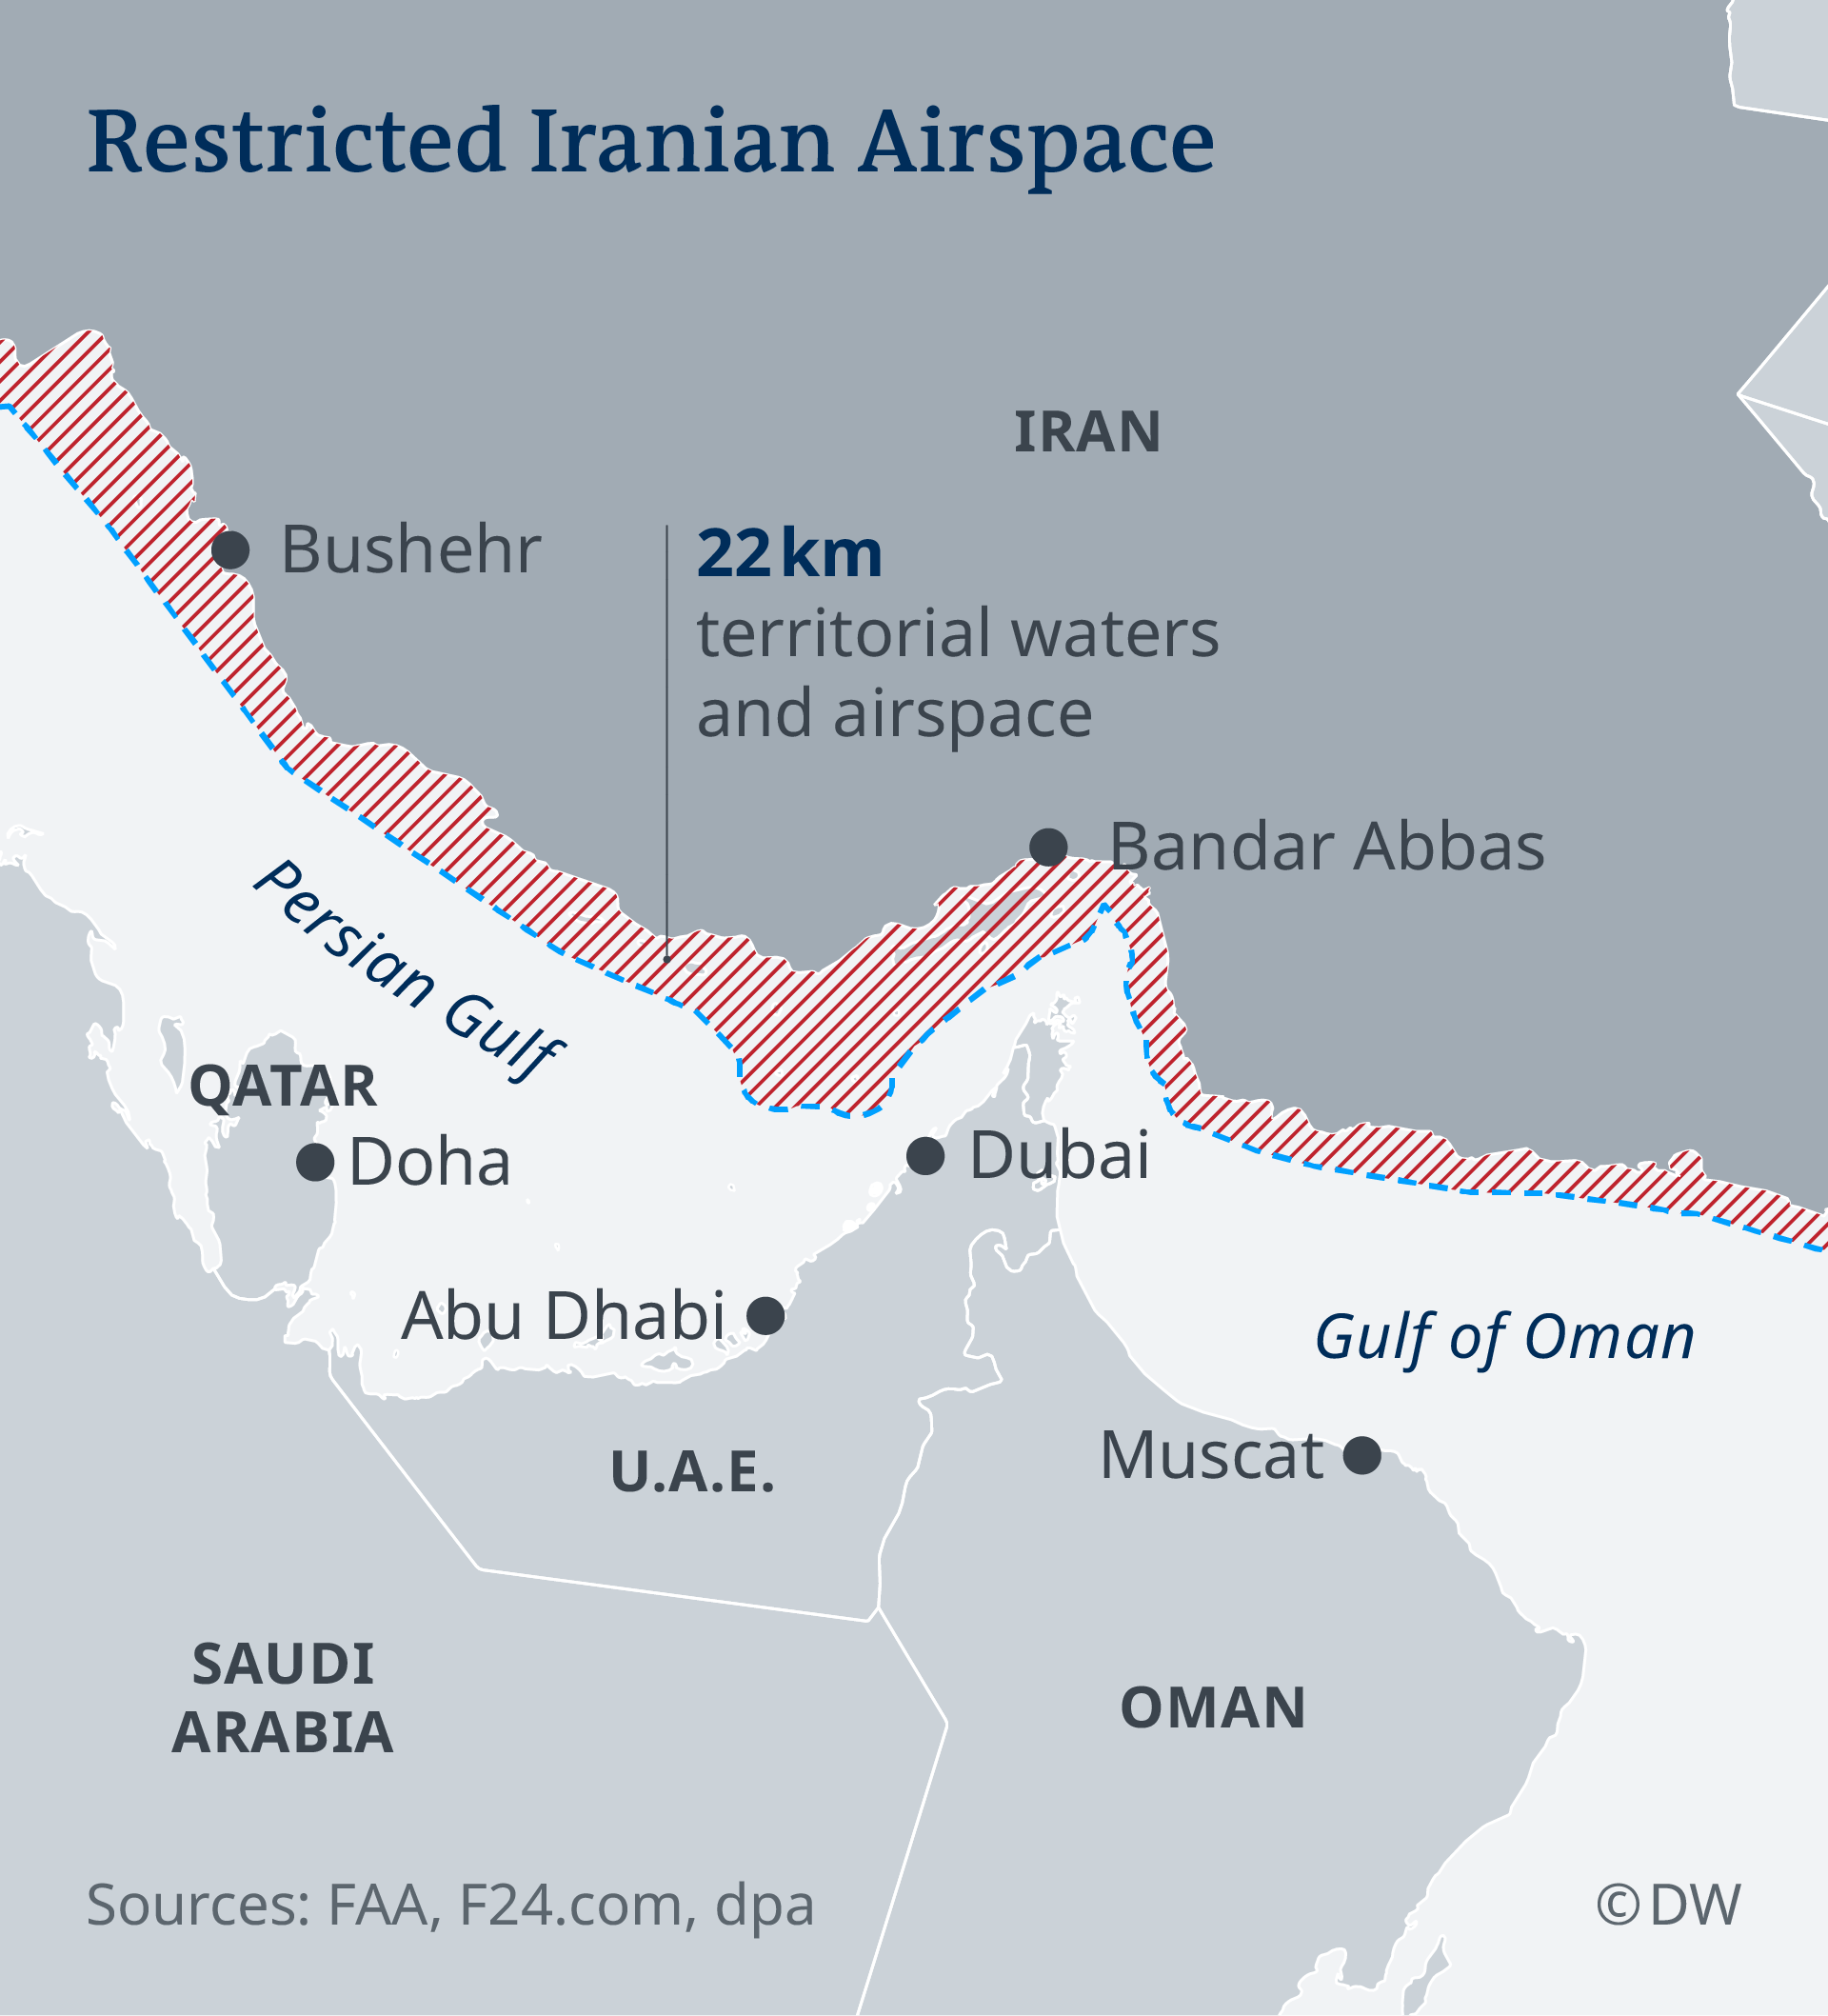 Infographic showing restricted Iranian airspace